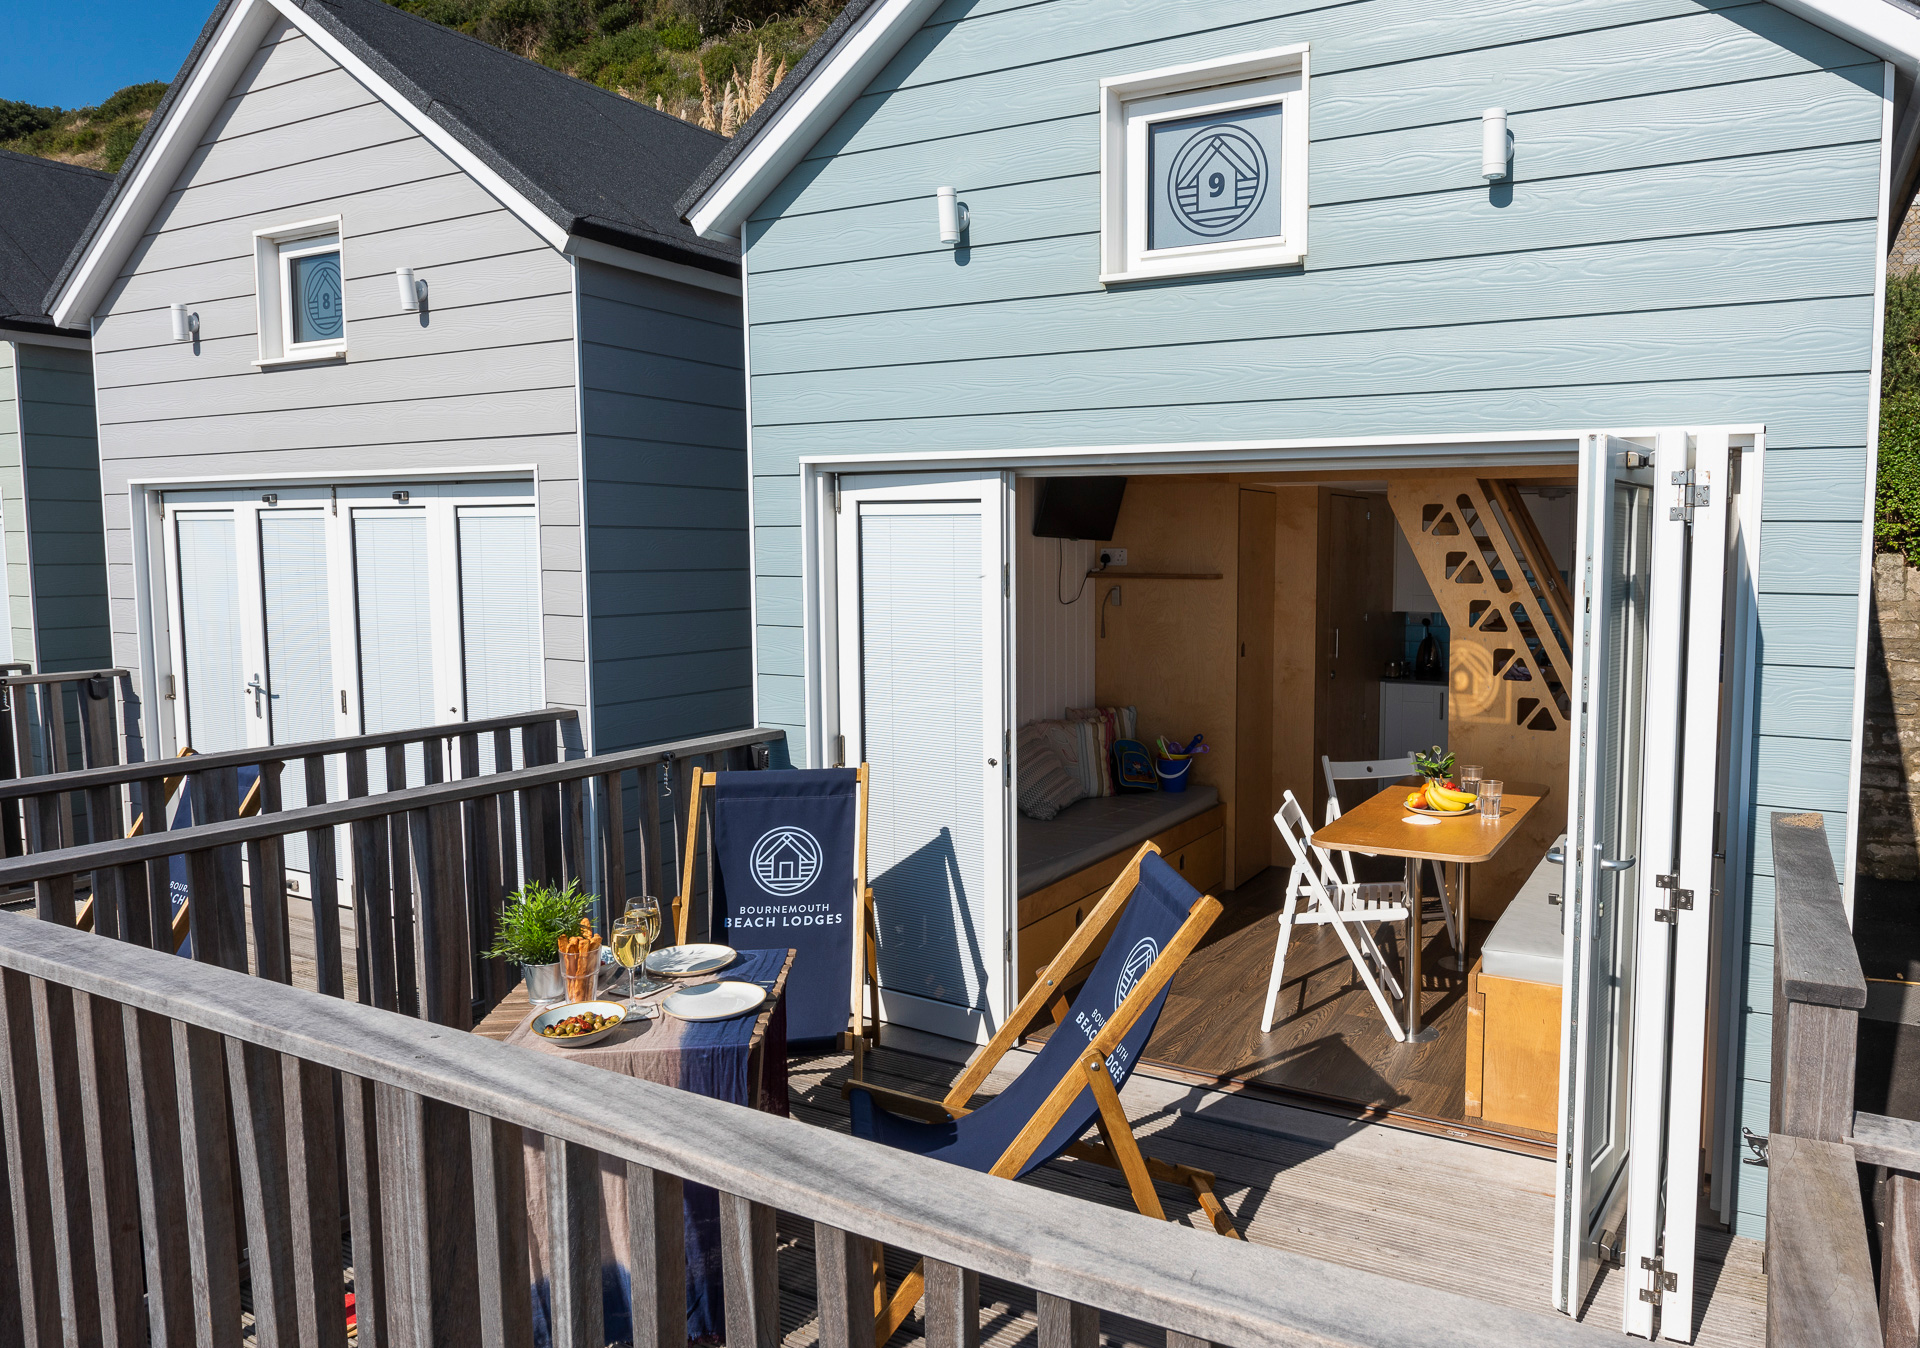 Bournemouth Beach Lodges - Deck